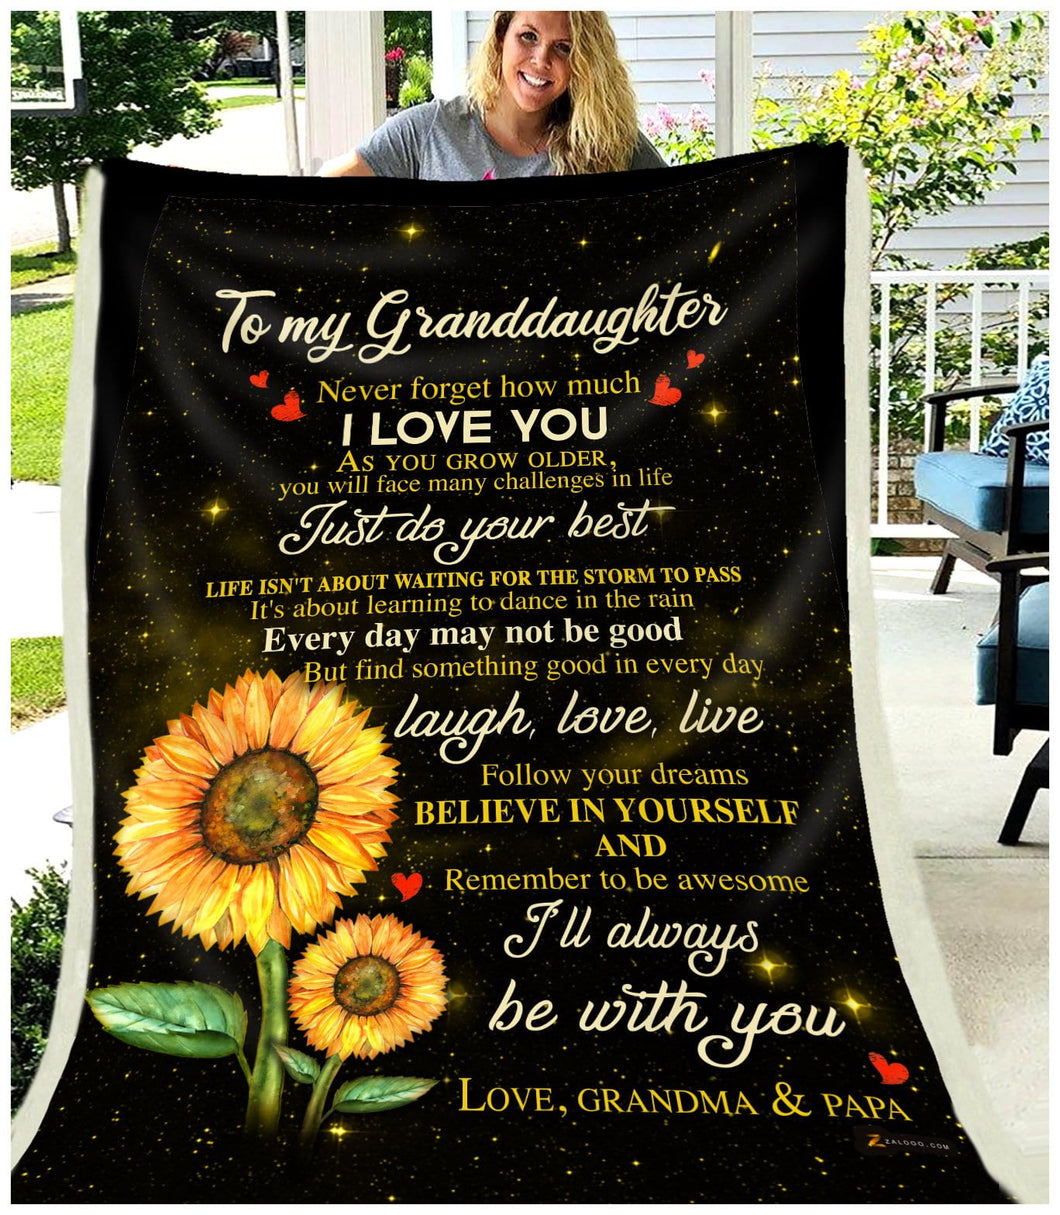 BLANKET Granddaughter (Grandma & Papa) I'll always be with you